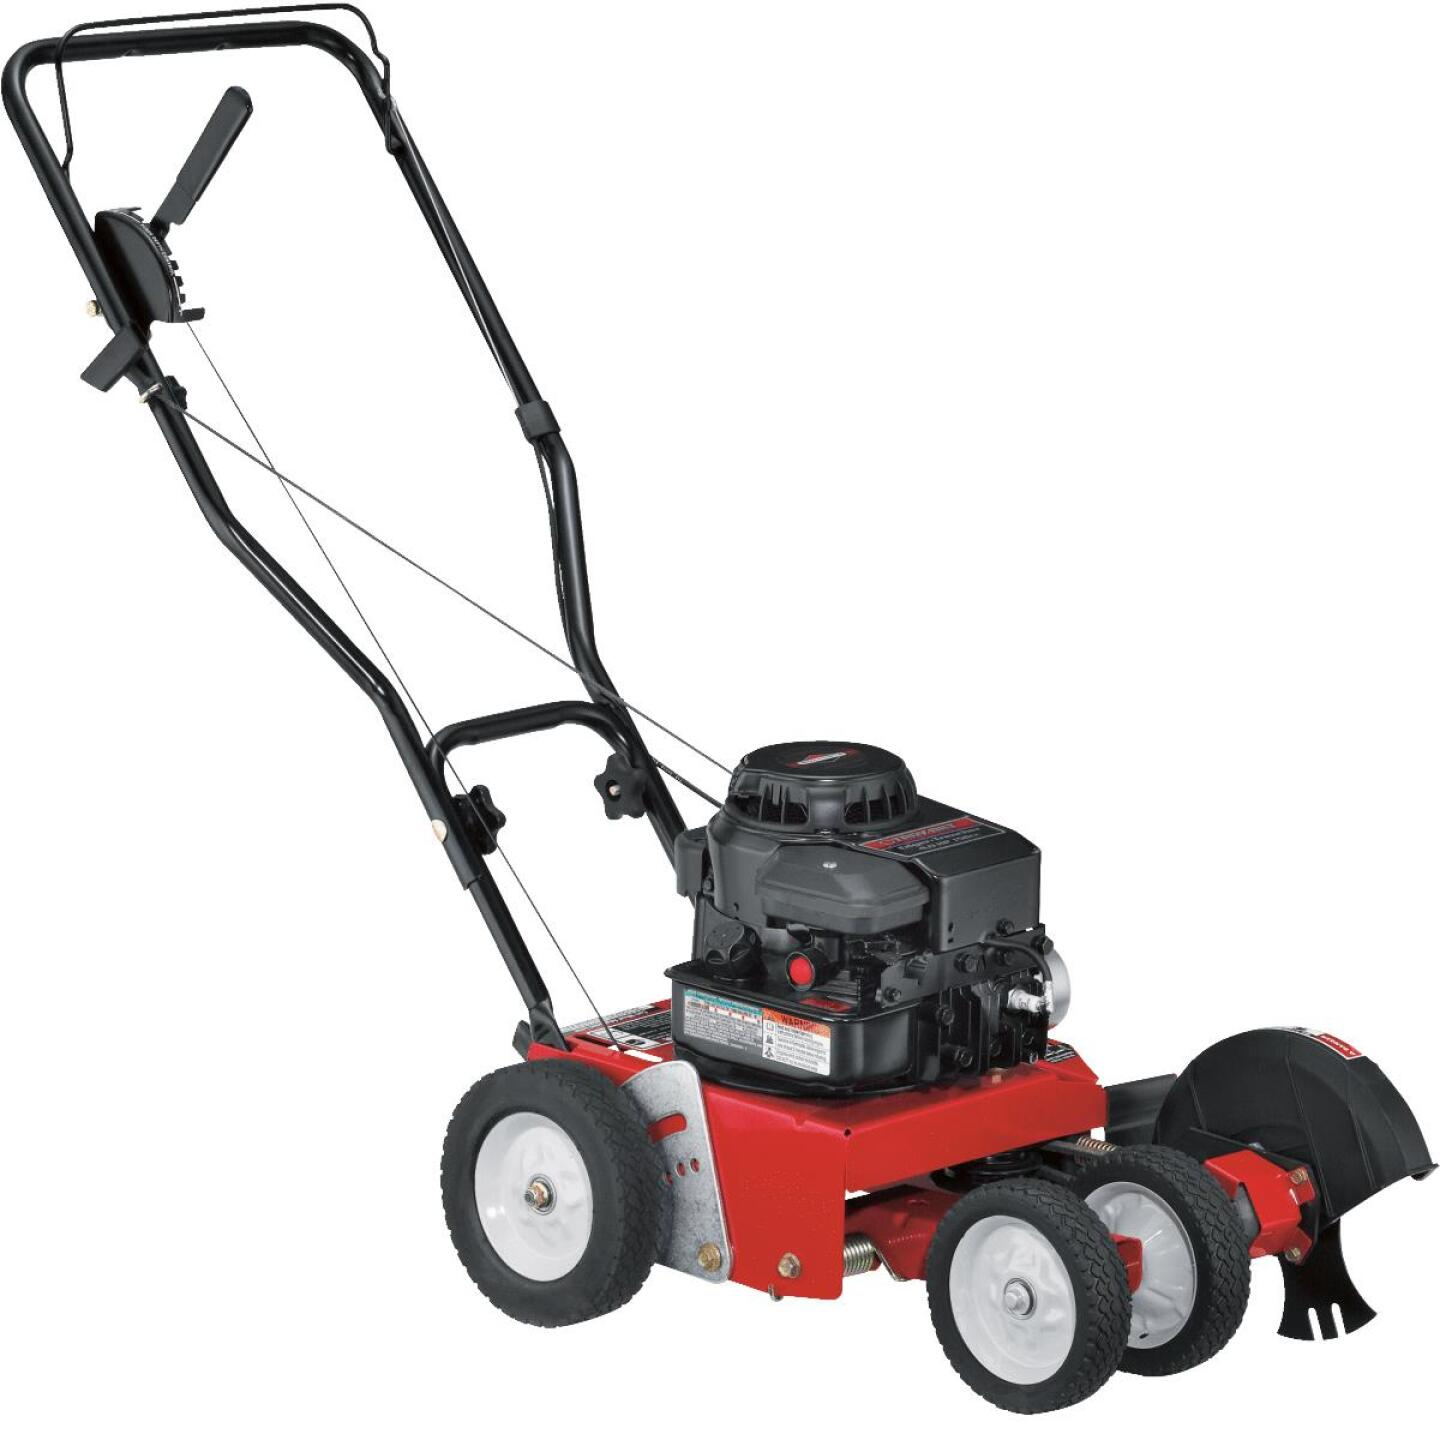 Troy-Bilt 9 In. 140CC Gas Lawn Edger/Trencher Image 1